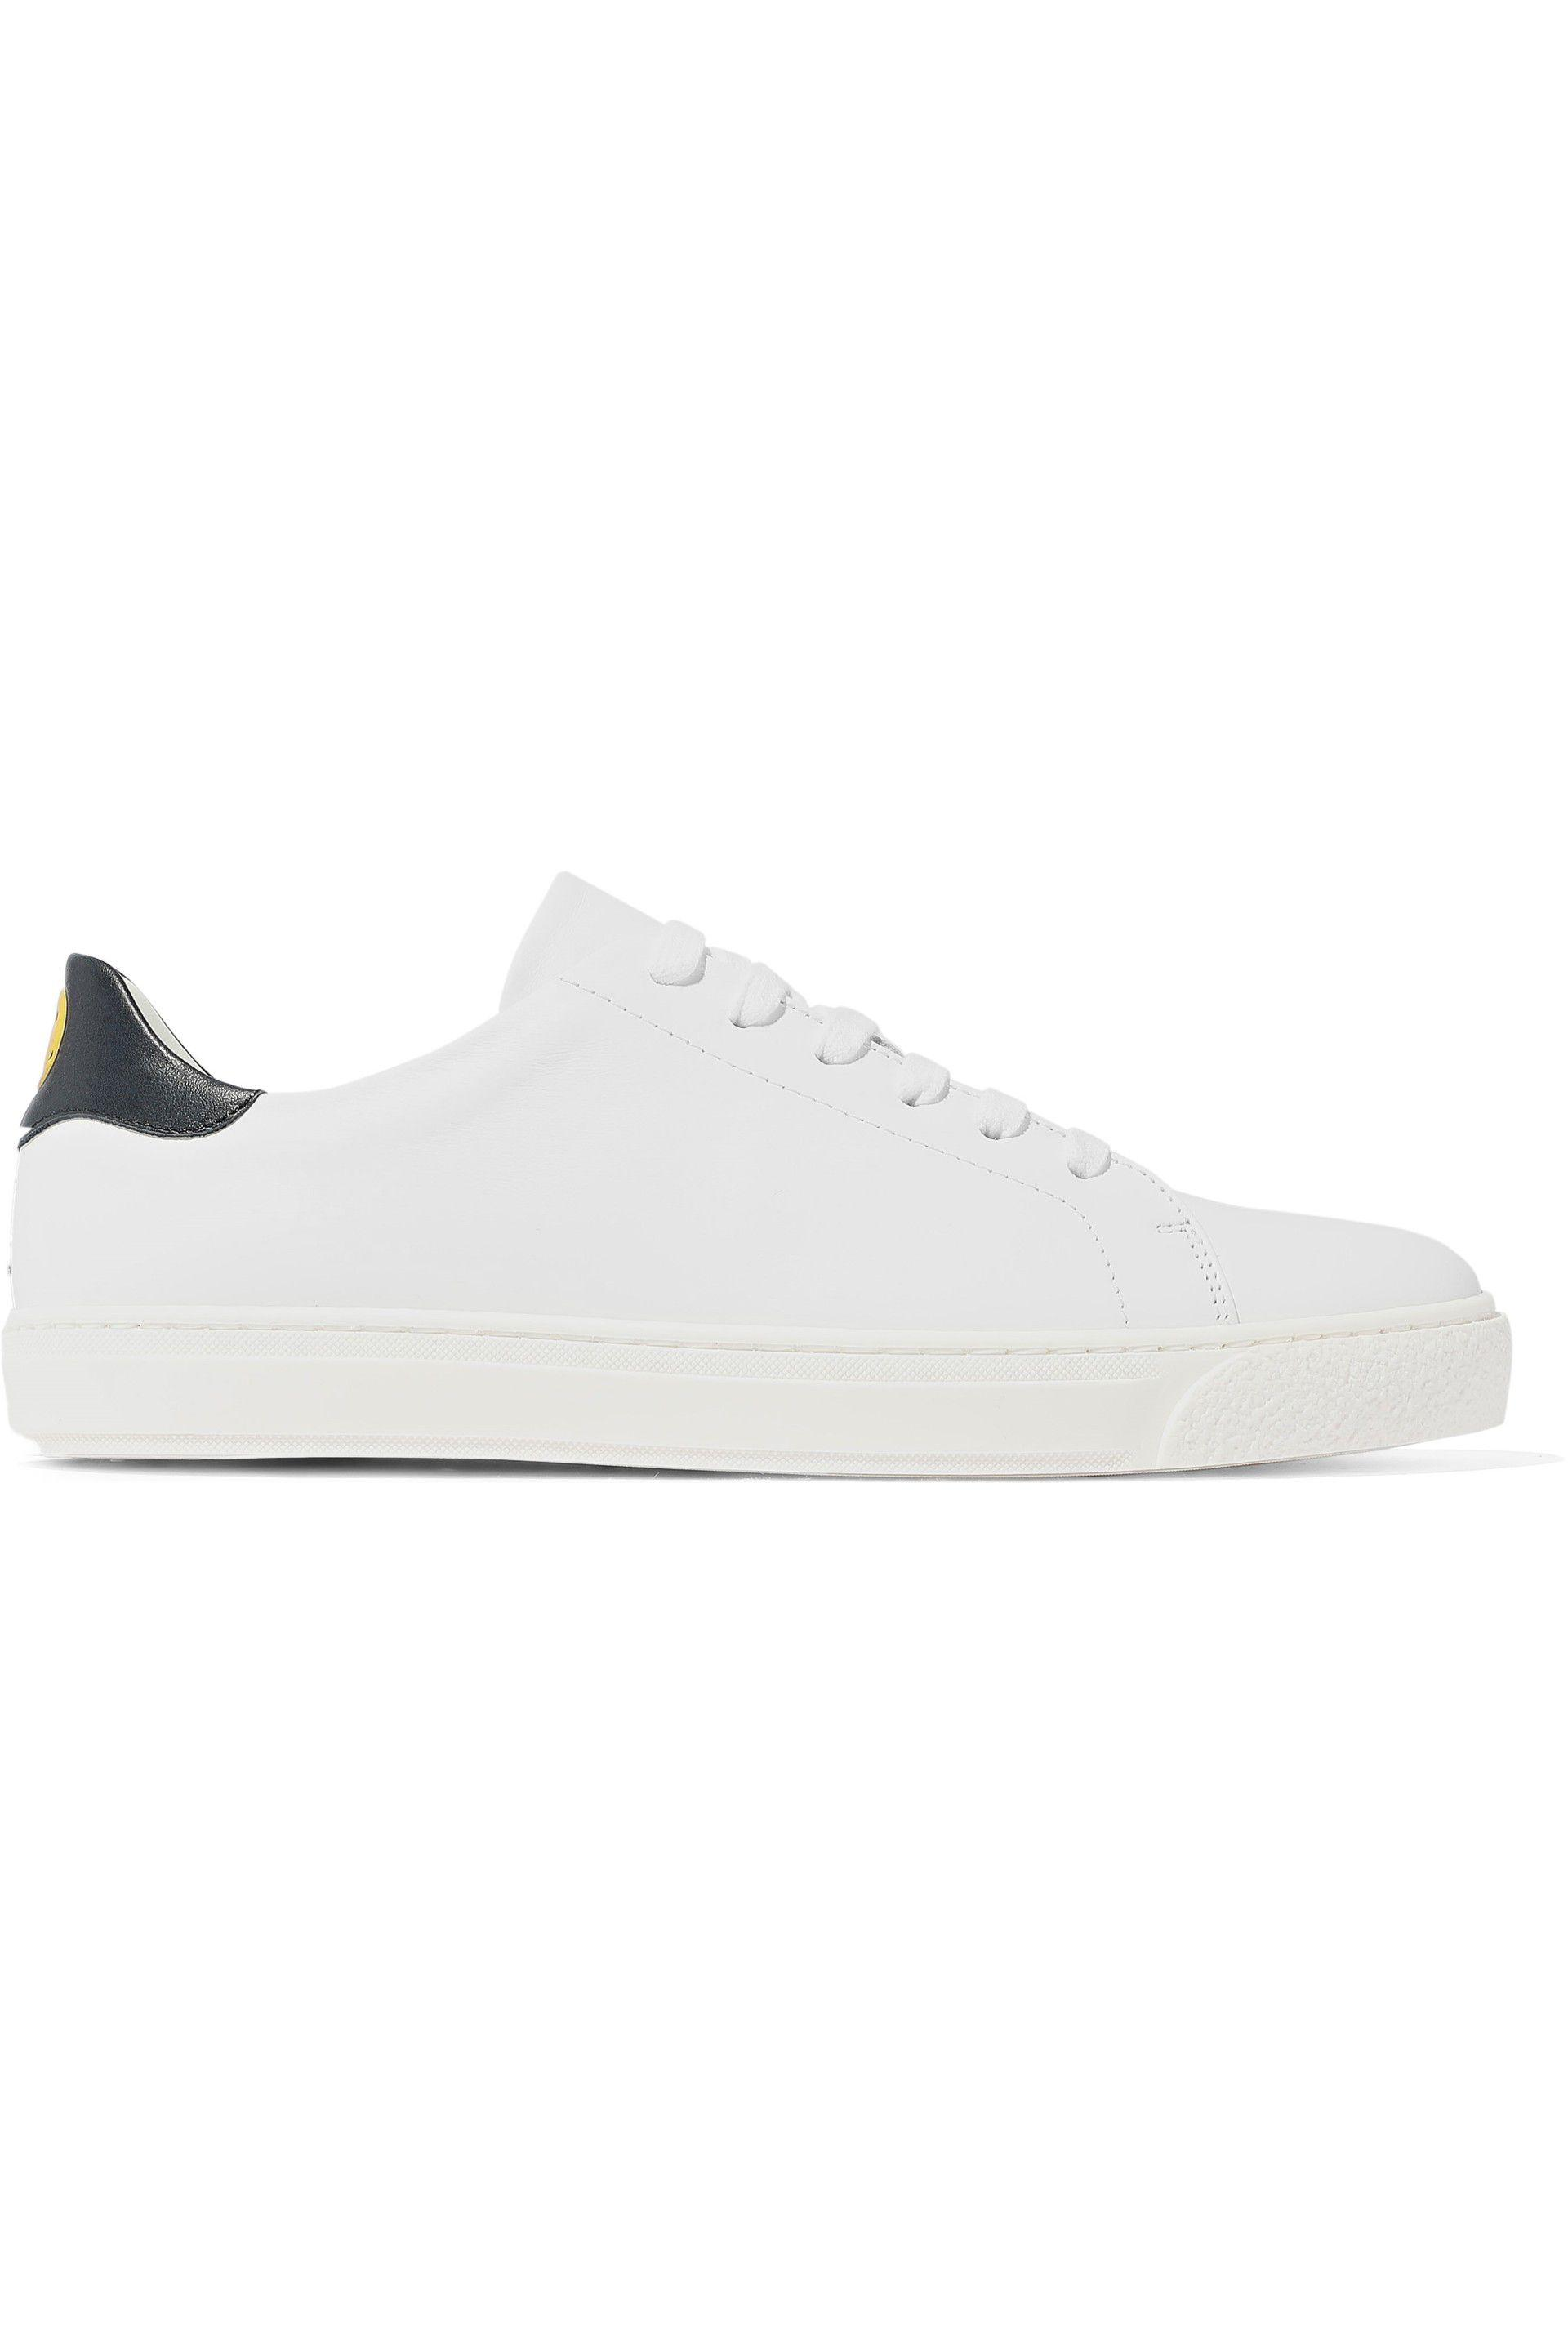 Anya Hindmarch Wink Printed Leather Sneakers in White - Lyst ac8b4d05ff4